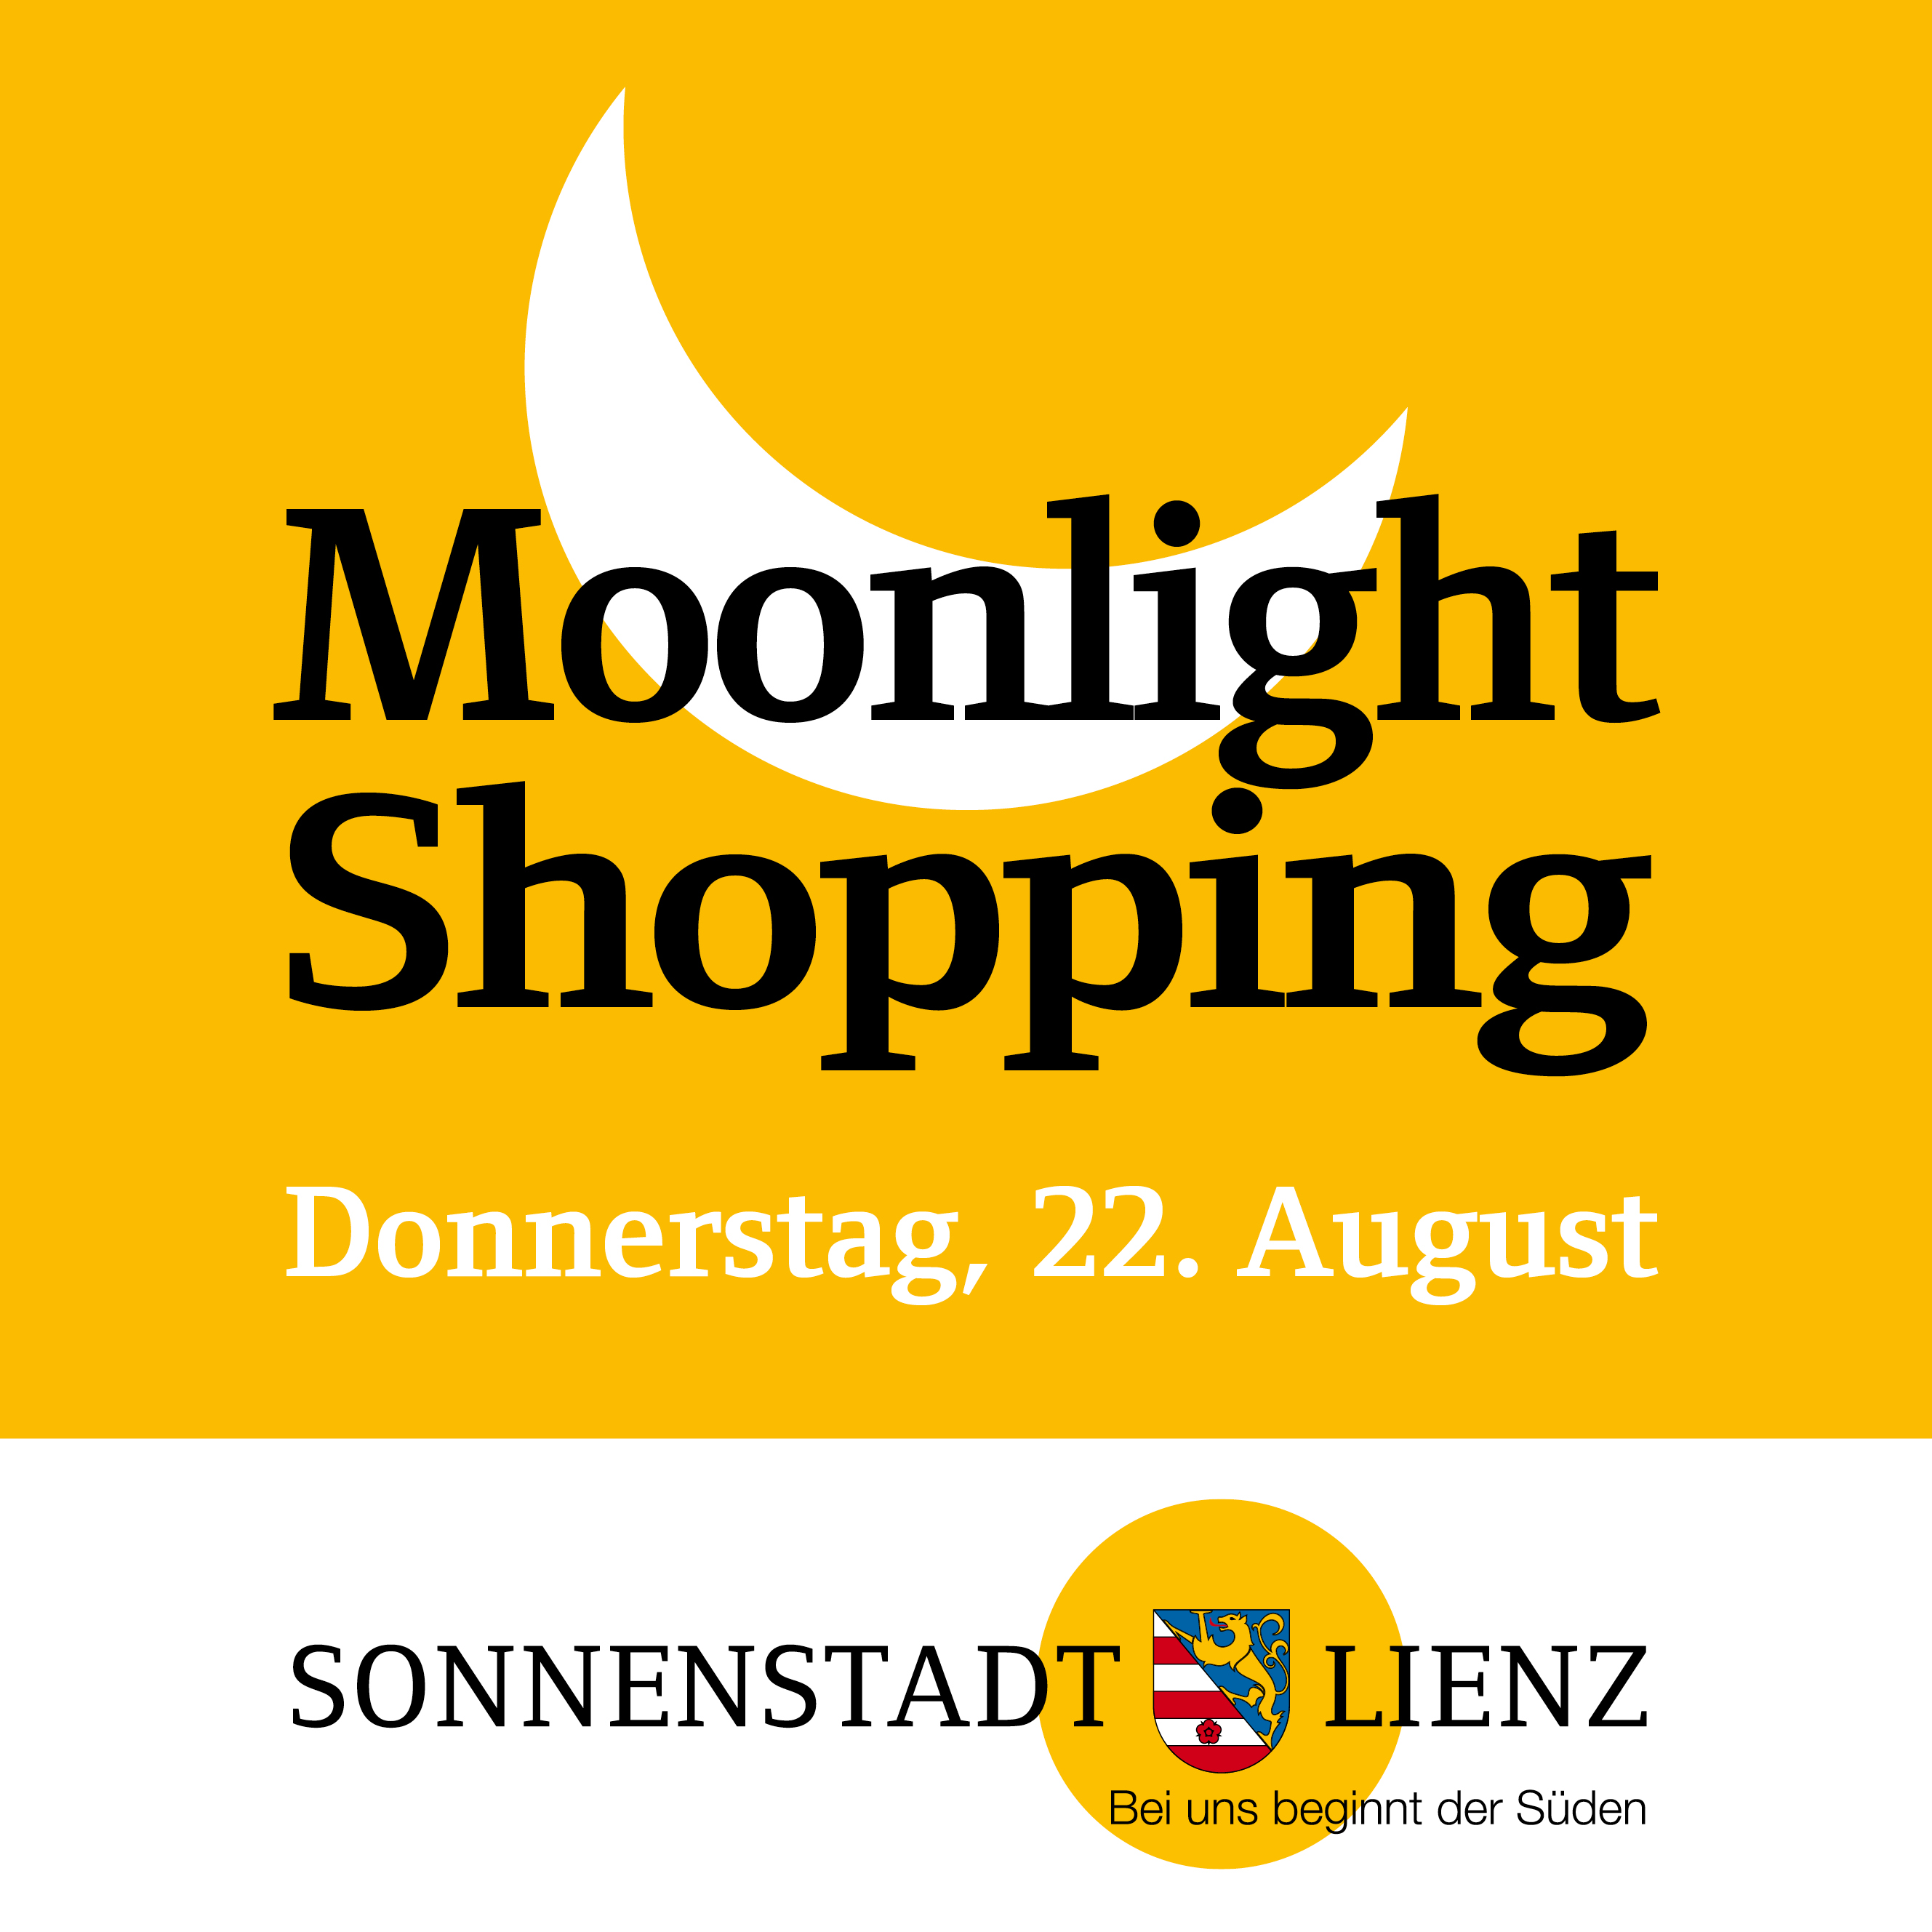 Moonlightshopping August 2019 vom 17. bis 22.8.2019